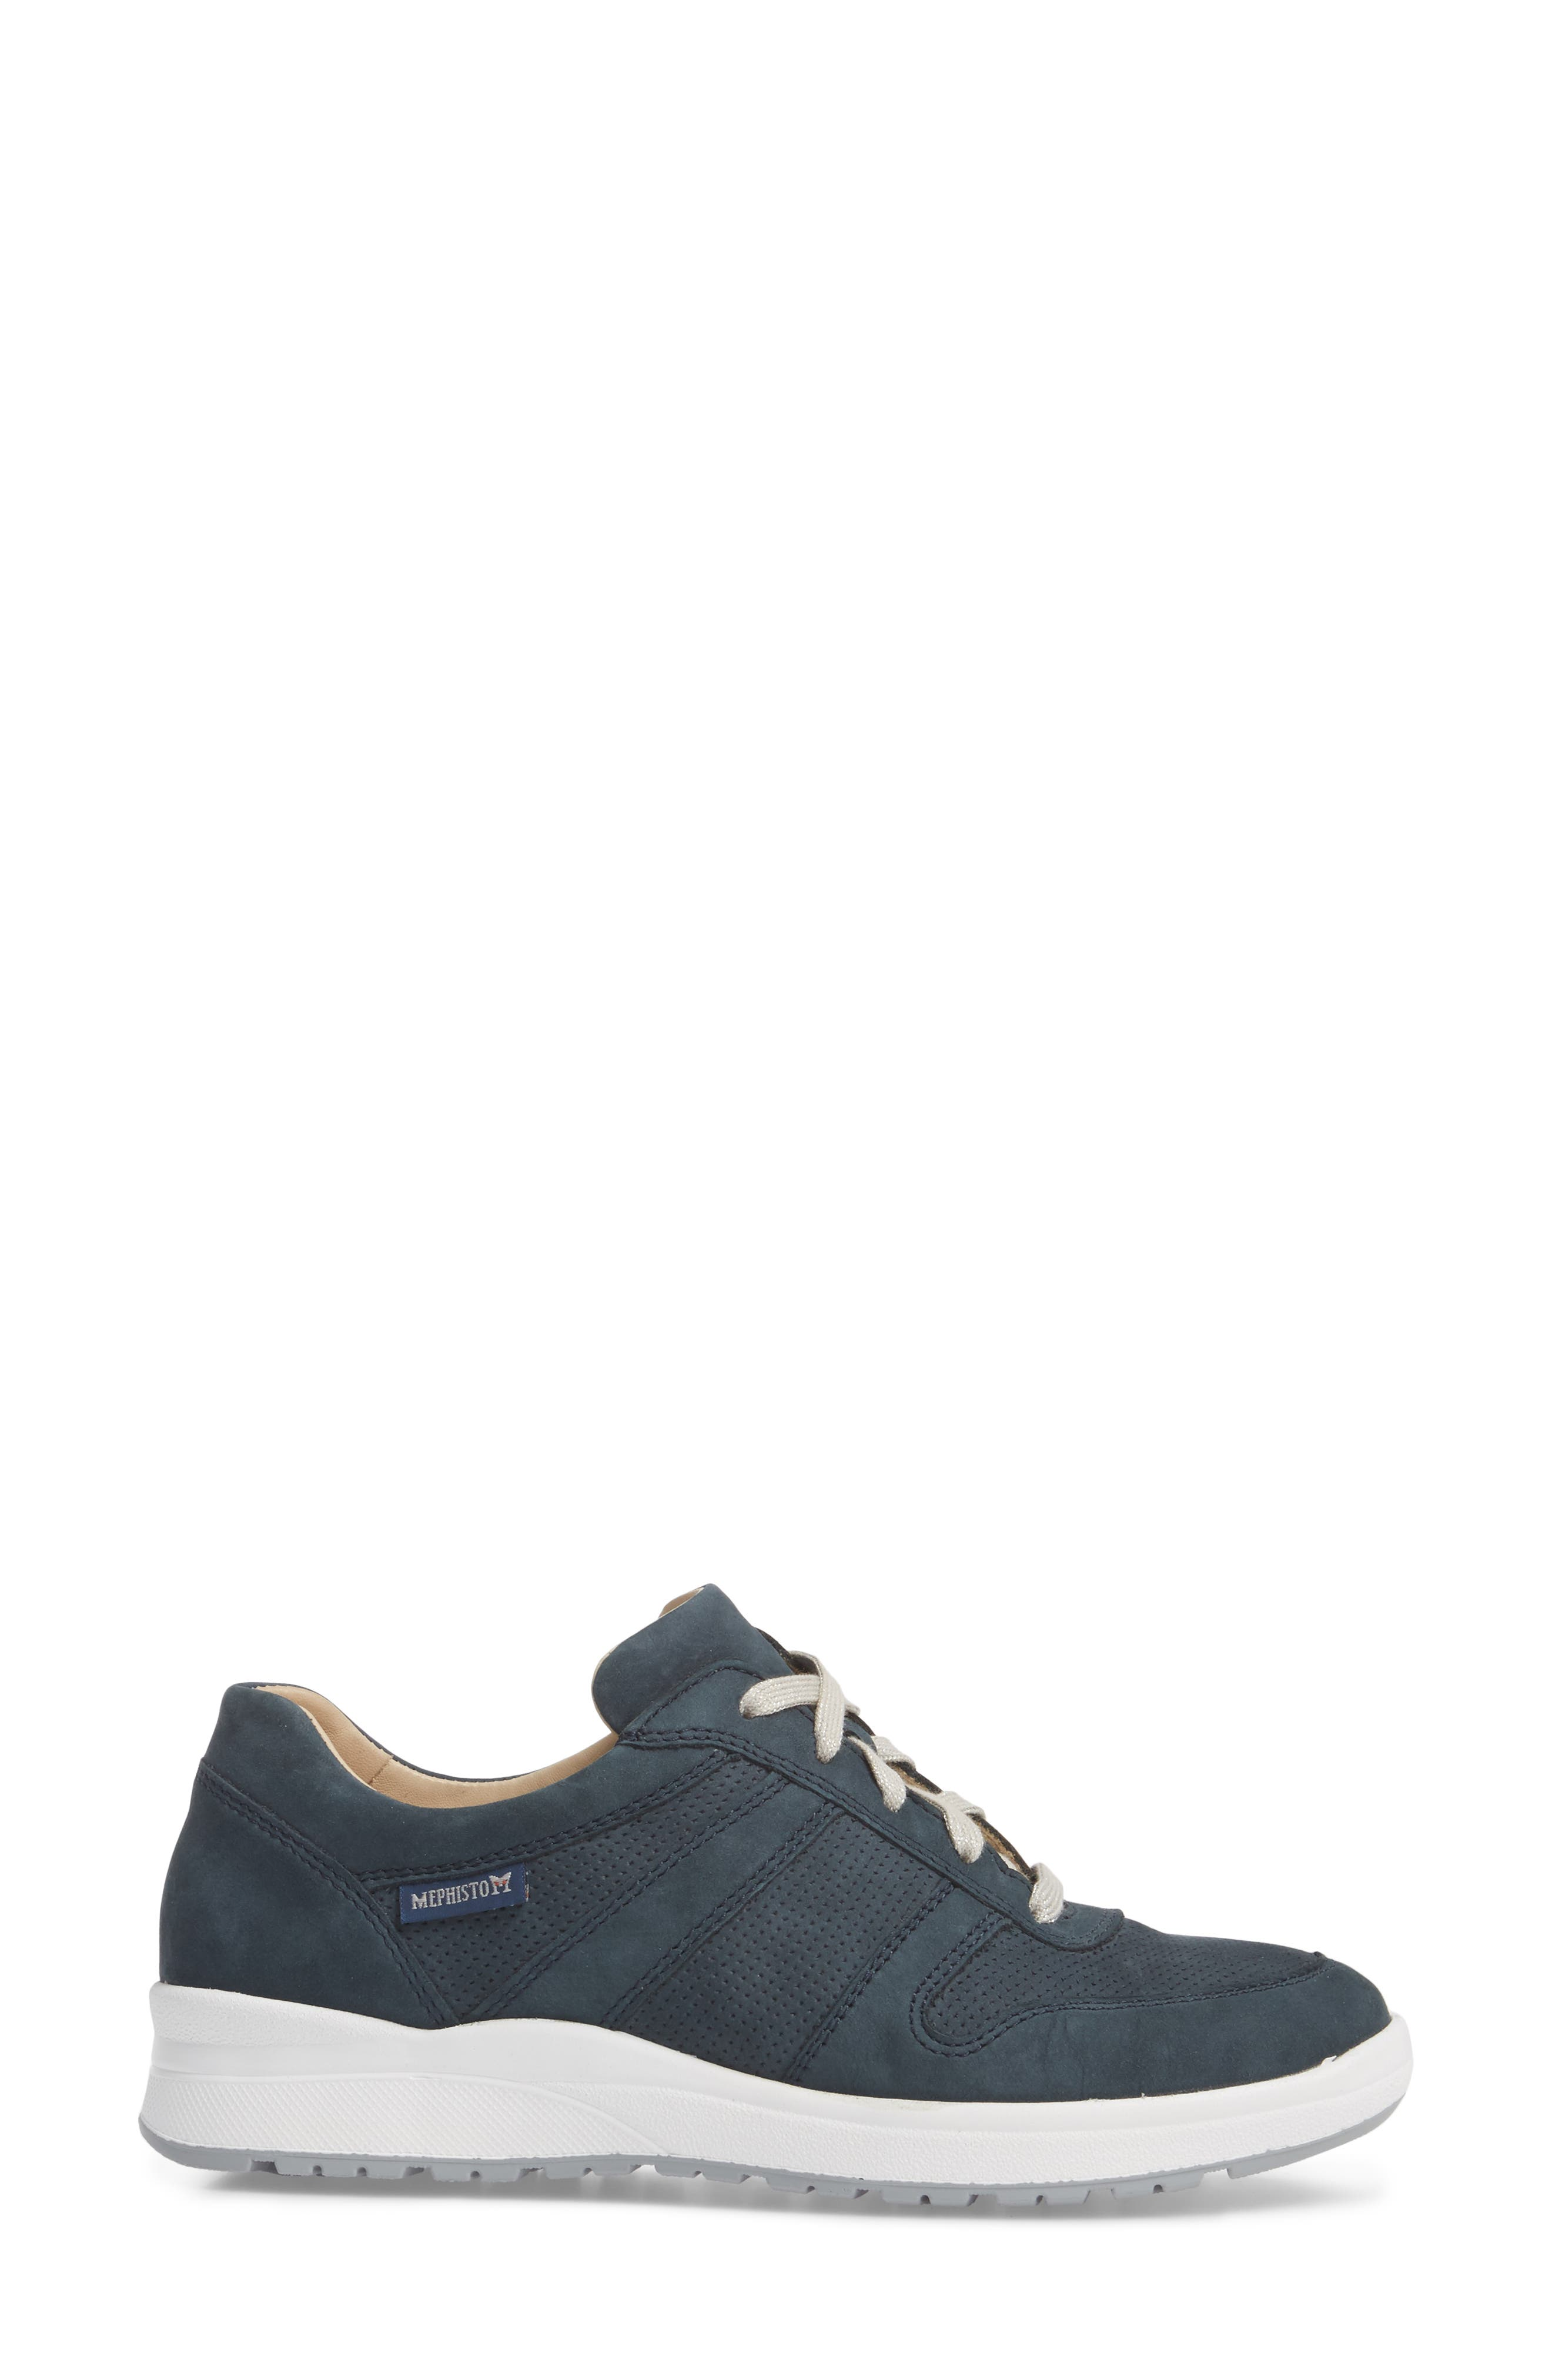 MEPHISTO, Rebecca Perforated Sneaker, Alternate thumbnail 3, color, NAVY